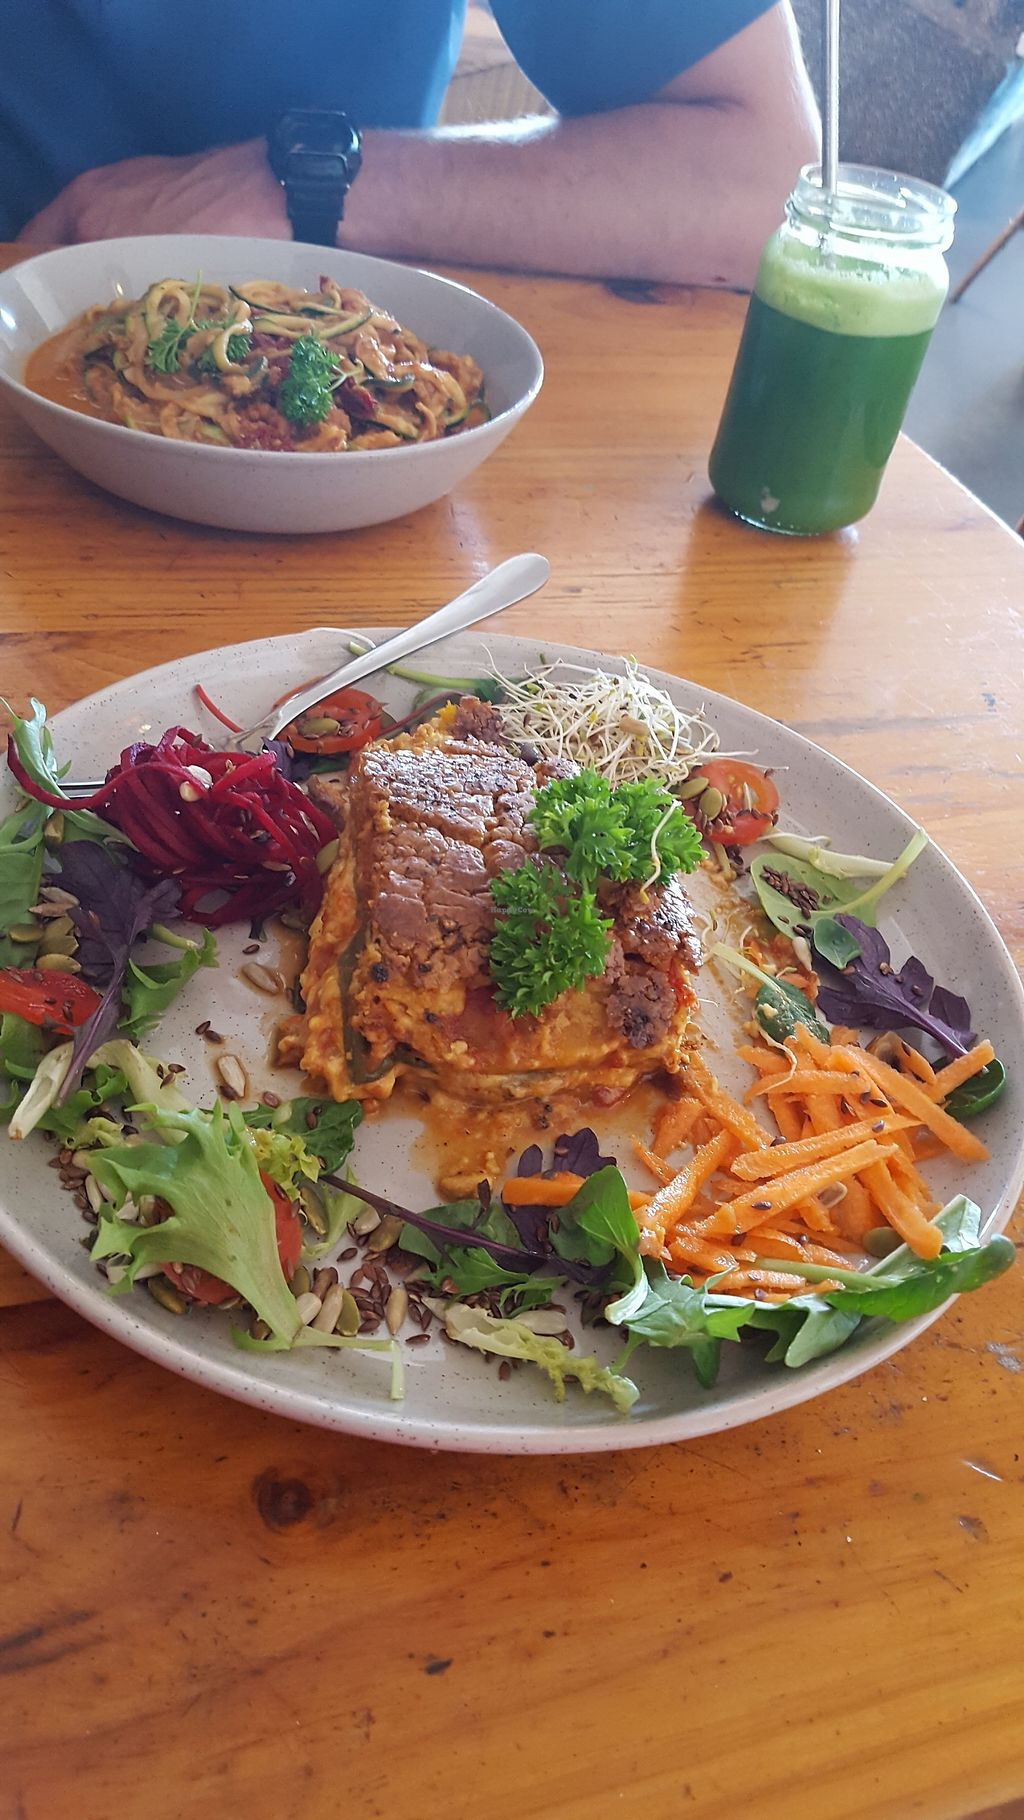 "Photo of The Alkaline Cafe  by <a href=""/members/profile/SarahElisabet"">SarahElisabet</a> <br/>Vegan lasagne <br/> November 7, 2017  - <a href='/contact/abuse/image/64365/322924'>Report</a>"